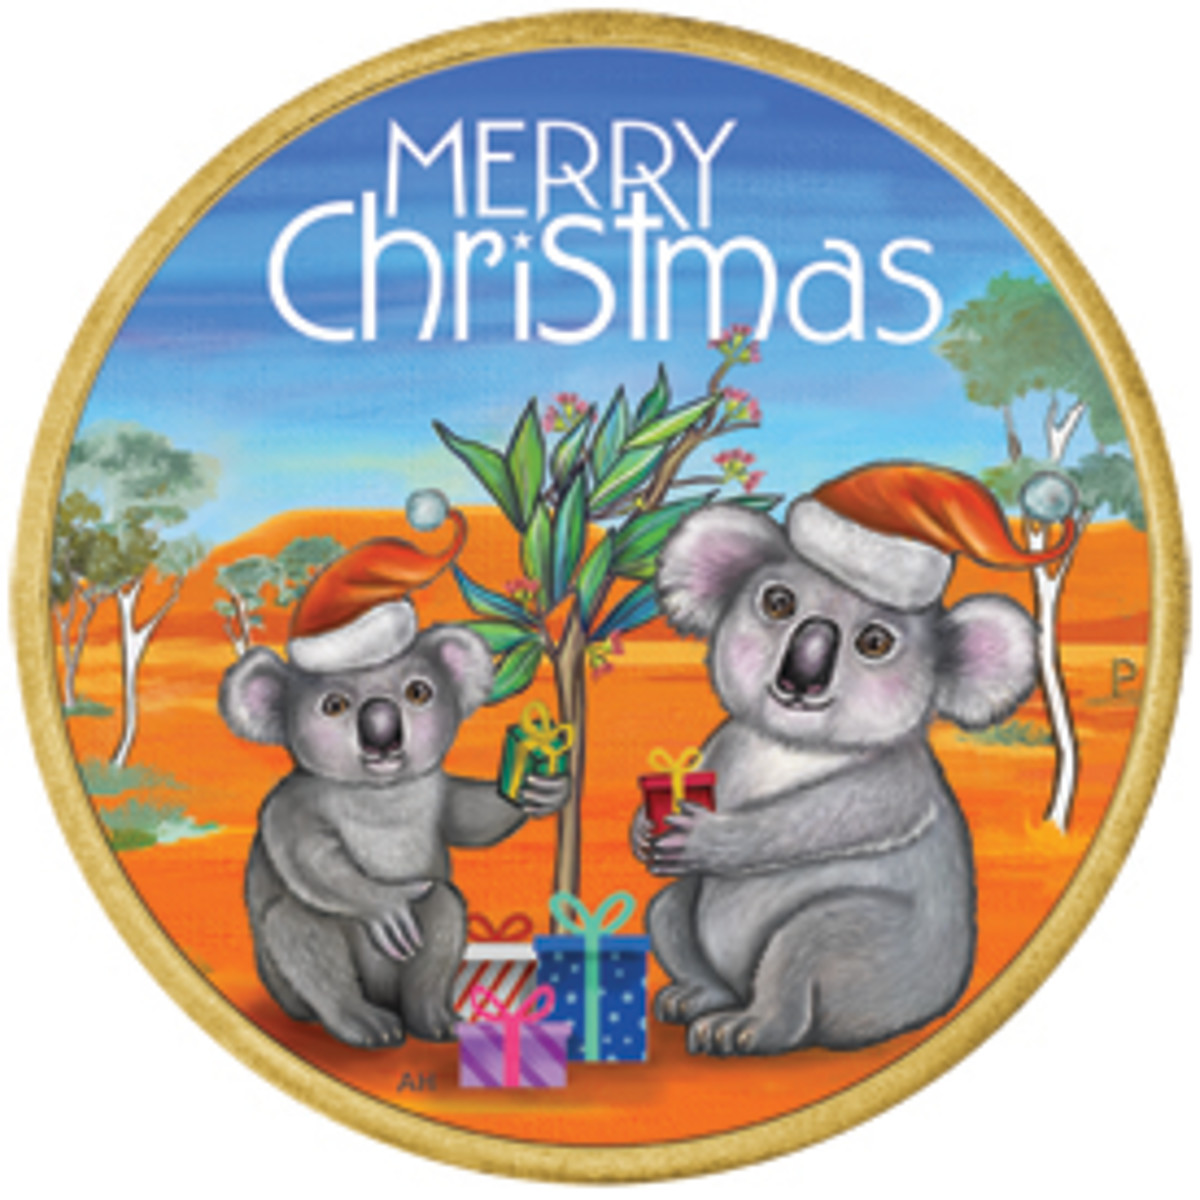 Two festive but dinkum Aussie Koalas exchange gifts under a gum tree on the colored reverse of this Australian aluminum-bronze dollar. It is available as part of an Australia Post PNC. (Image courtesy The Perth Mint & Australia Post)